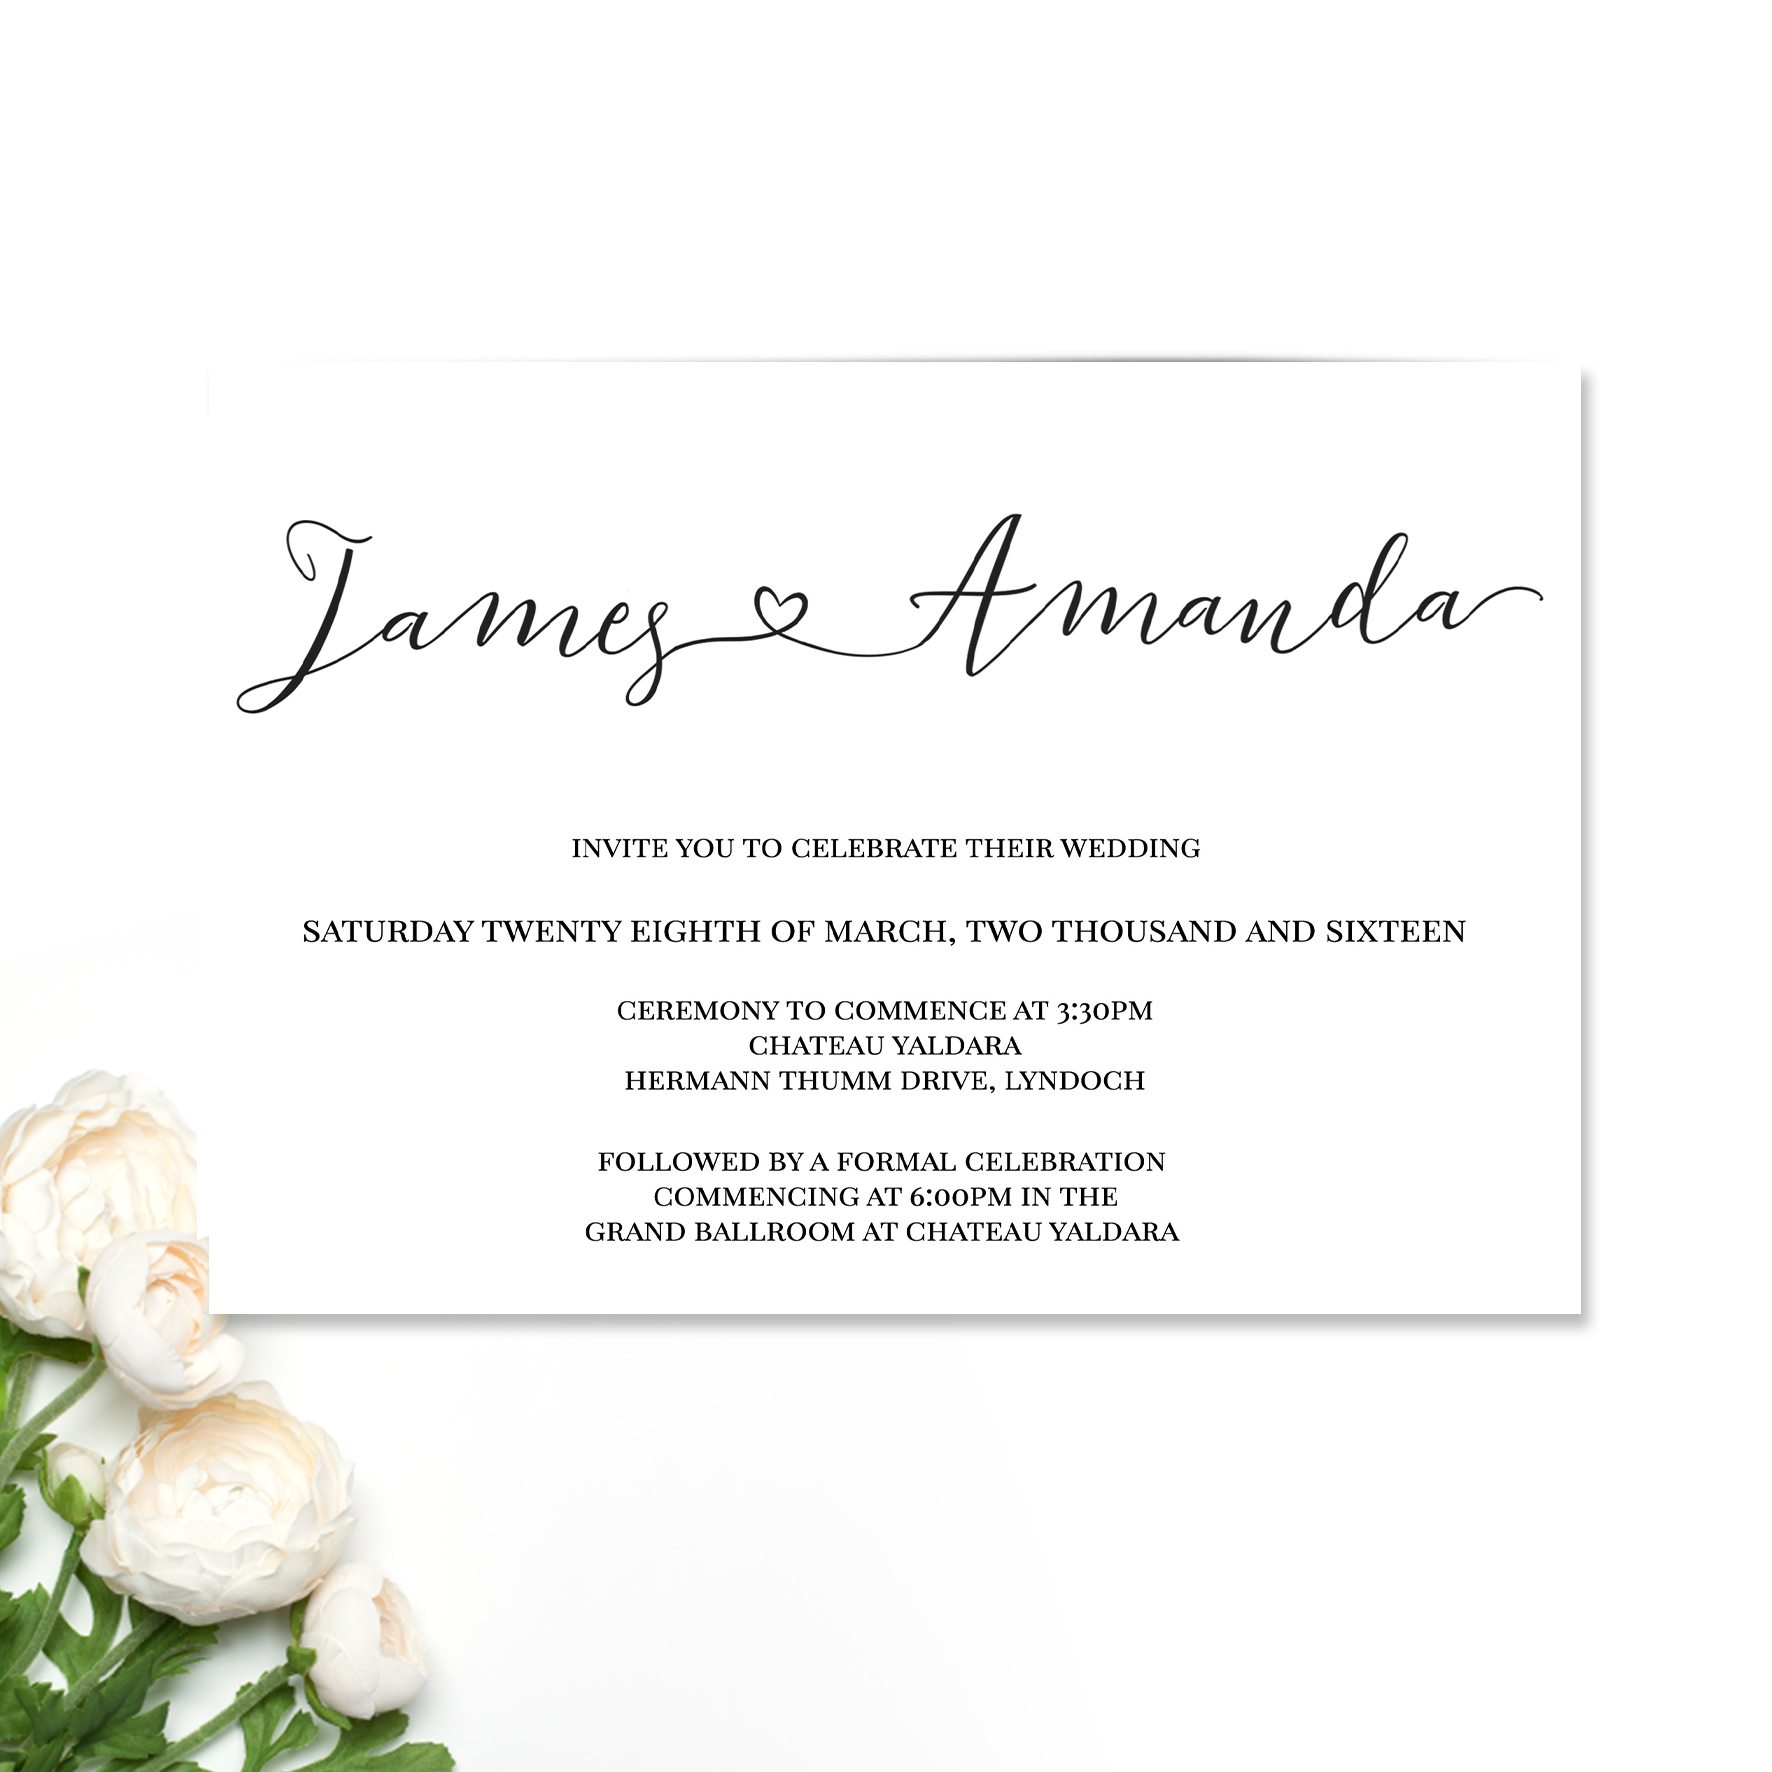 James + Amanda Wedding Invitation